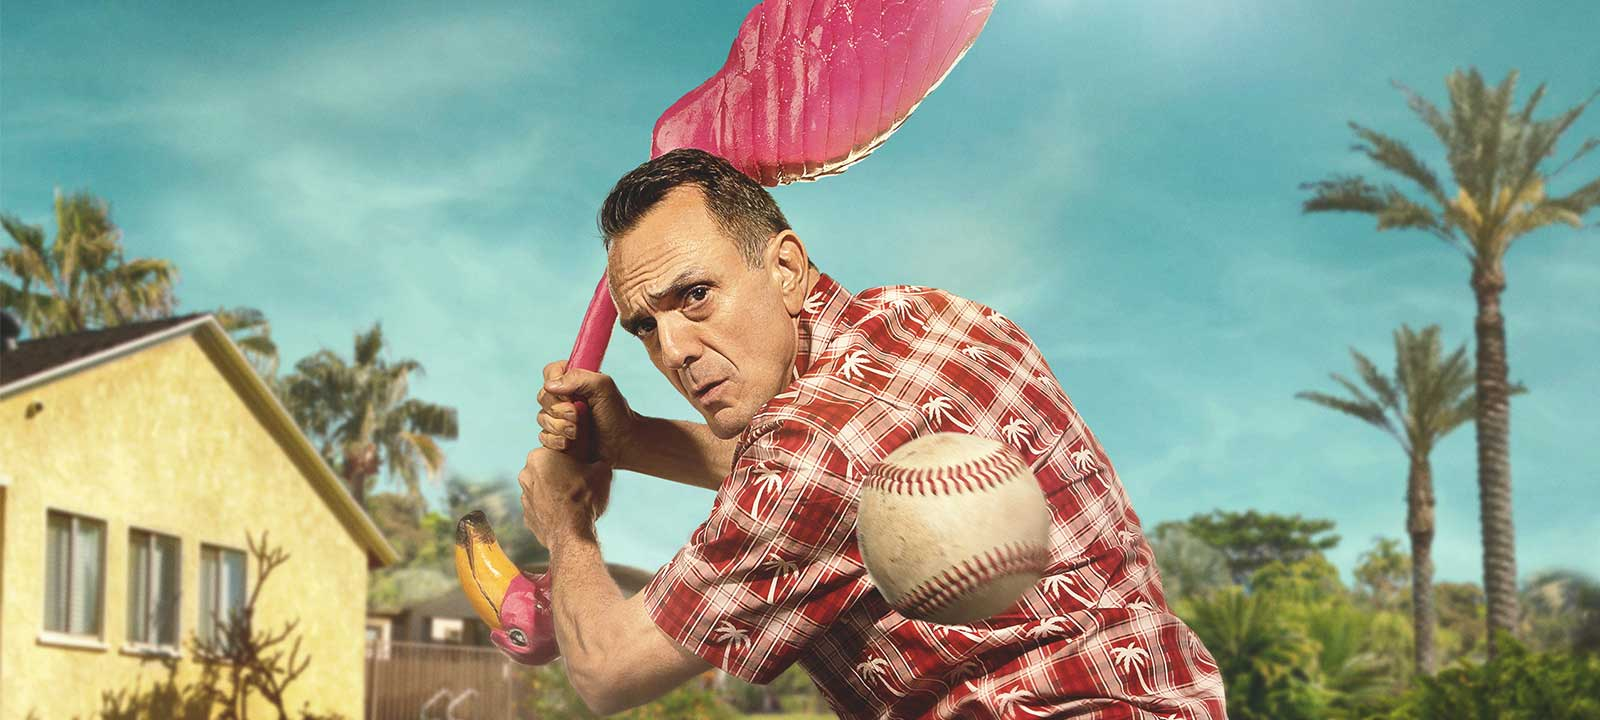 ifc-brockmire-S3-key-art-final-800x600_MobileWeb_HomeHero_v01